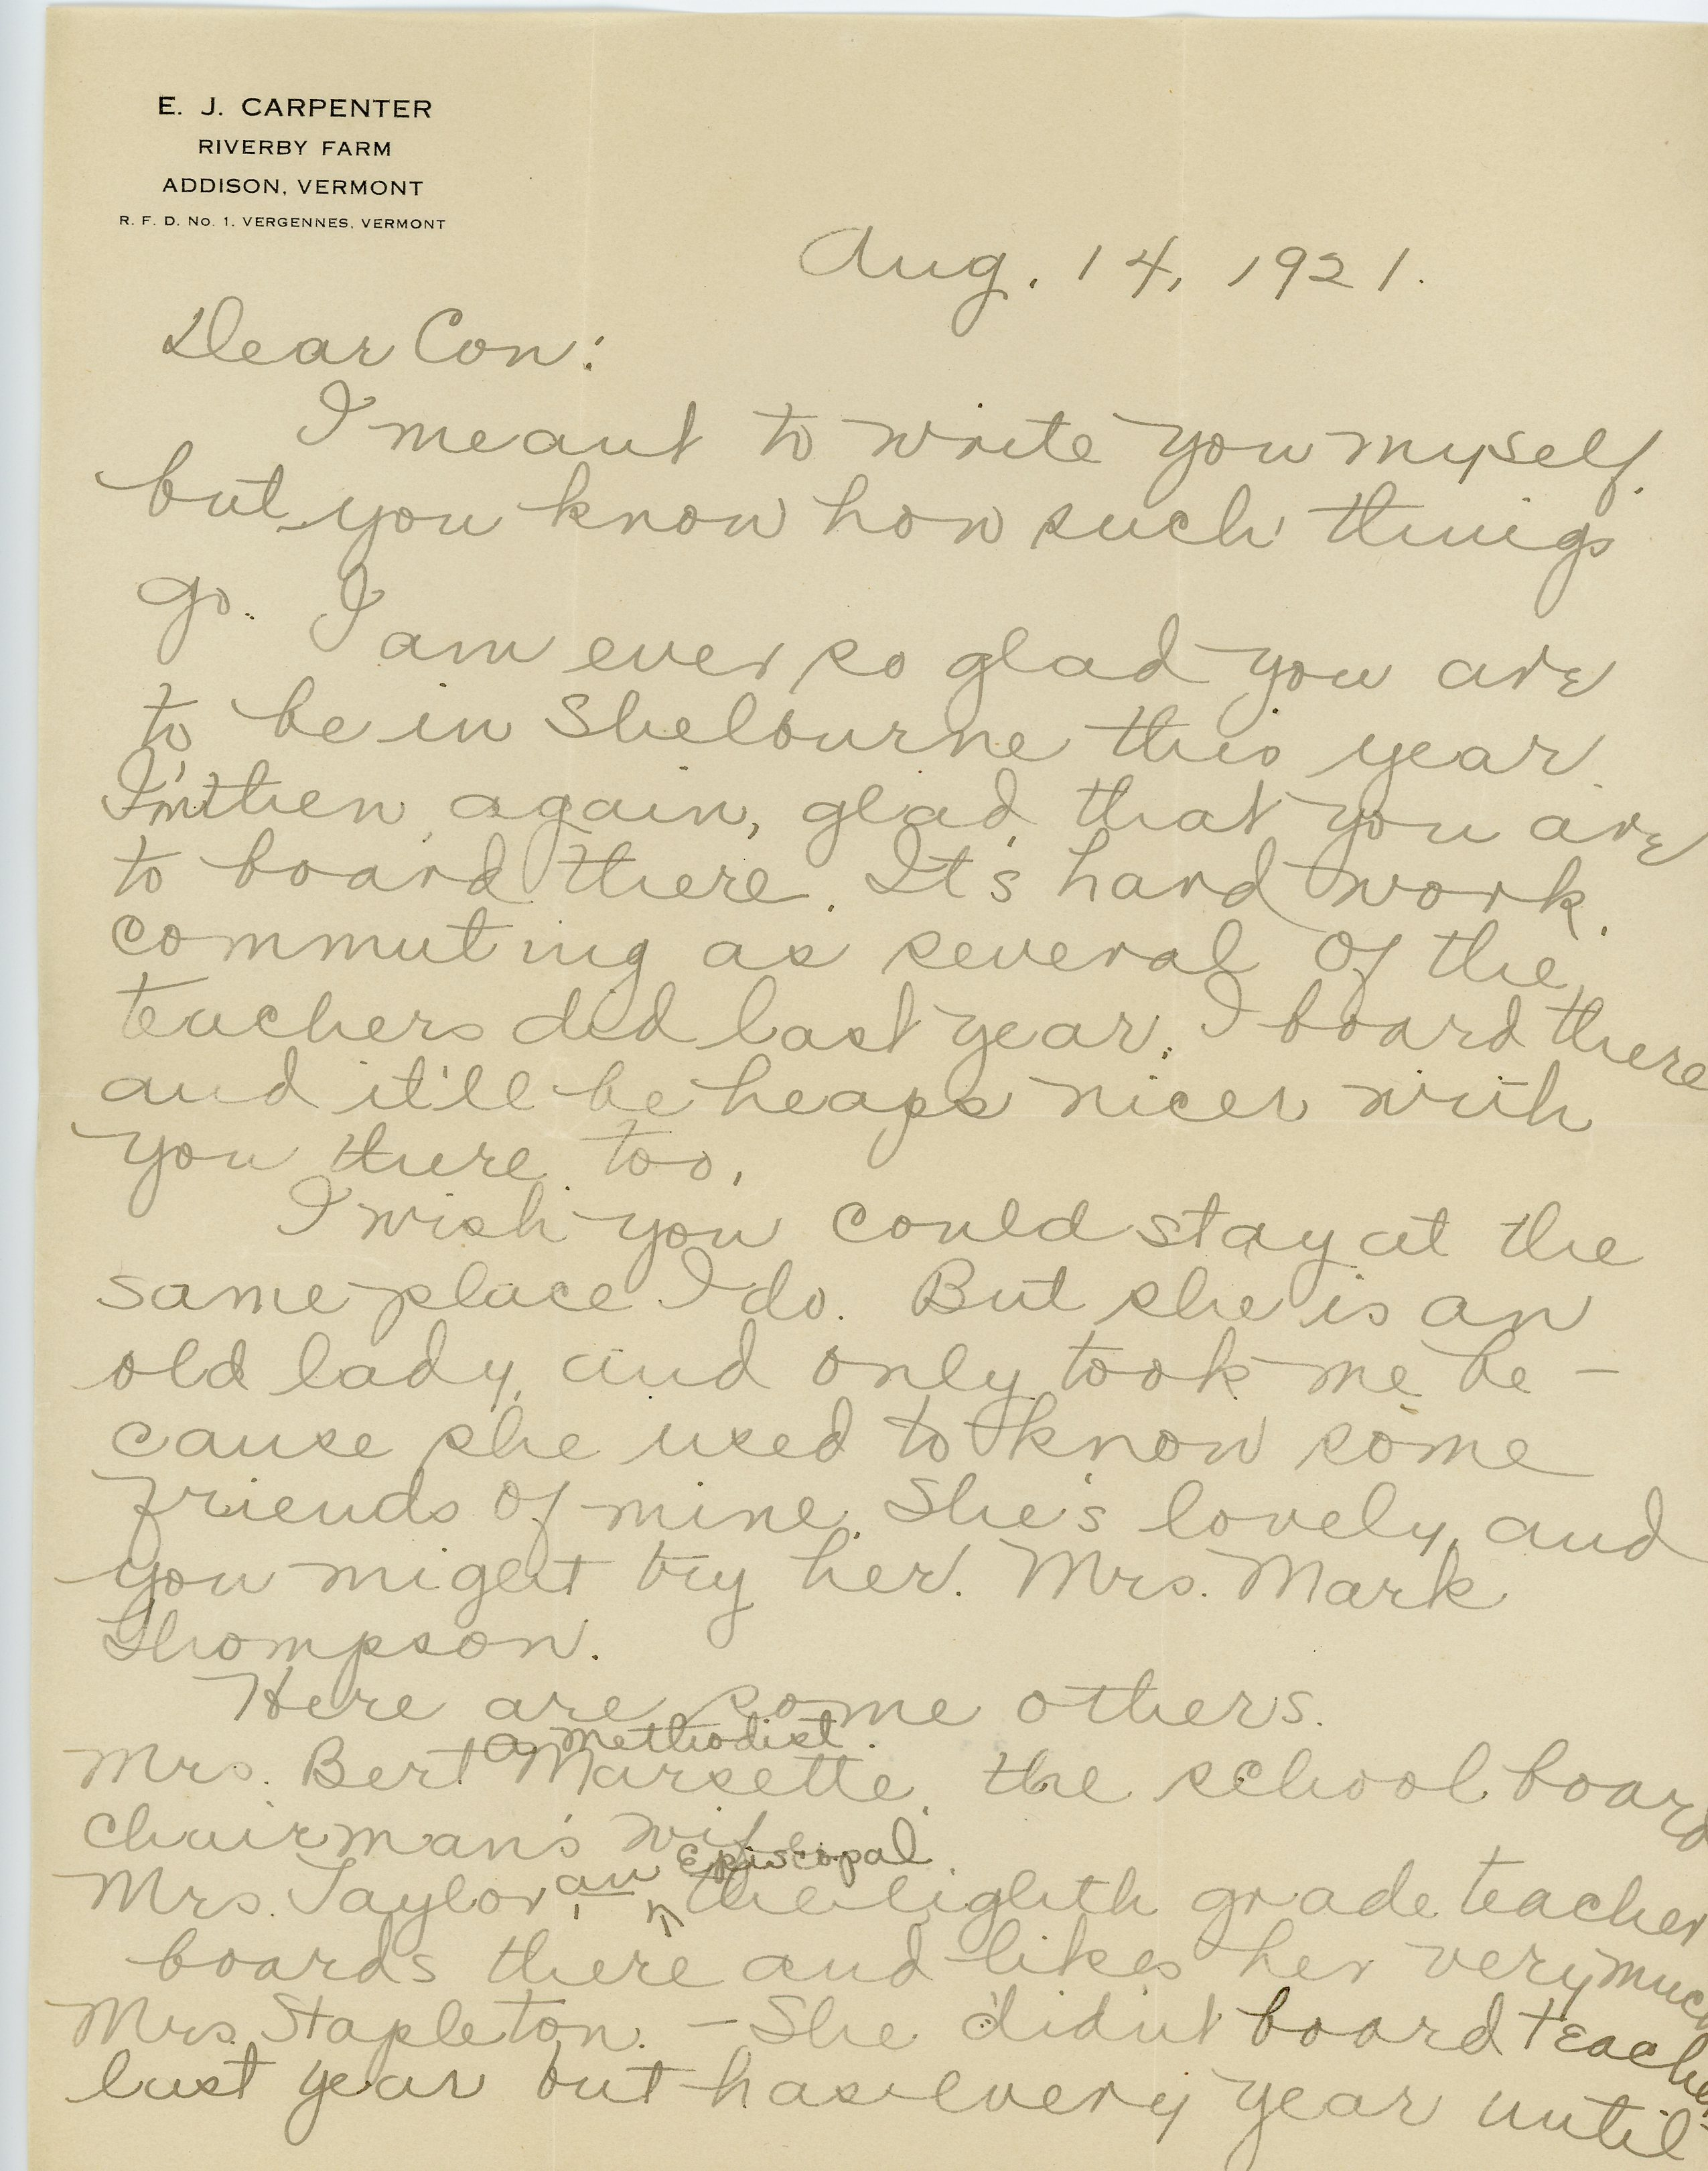 Letter to Consuelo Northrop Bailey from Margaret A. Carpenter 1921, August 14th